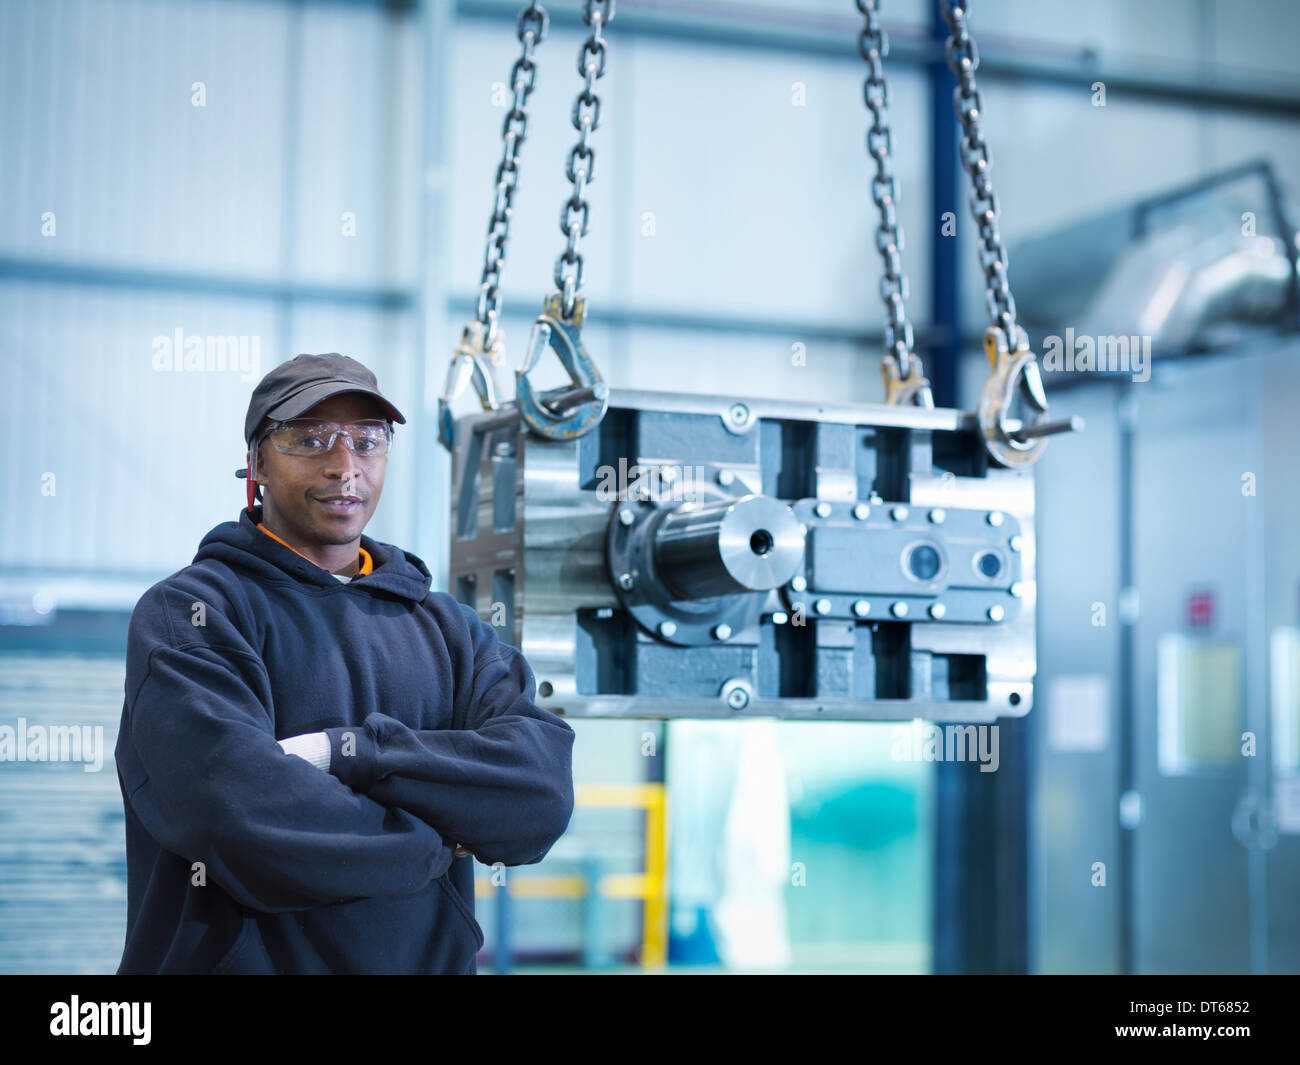 Engineer with industrial gearbox in engineering factory, portrait - Stock Image